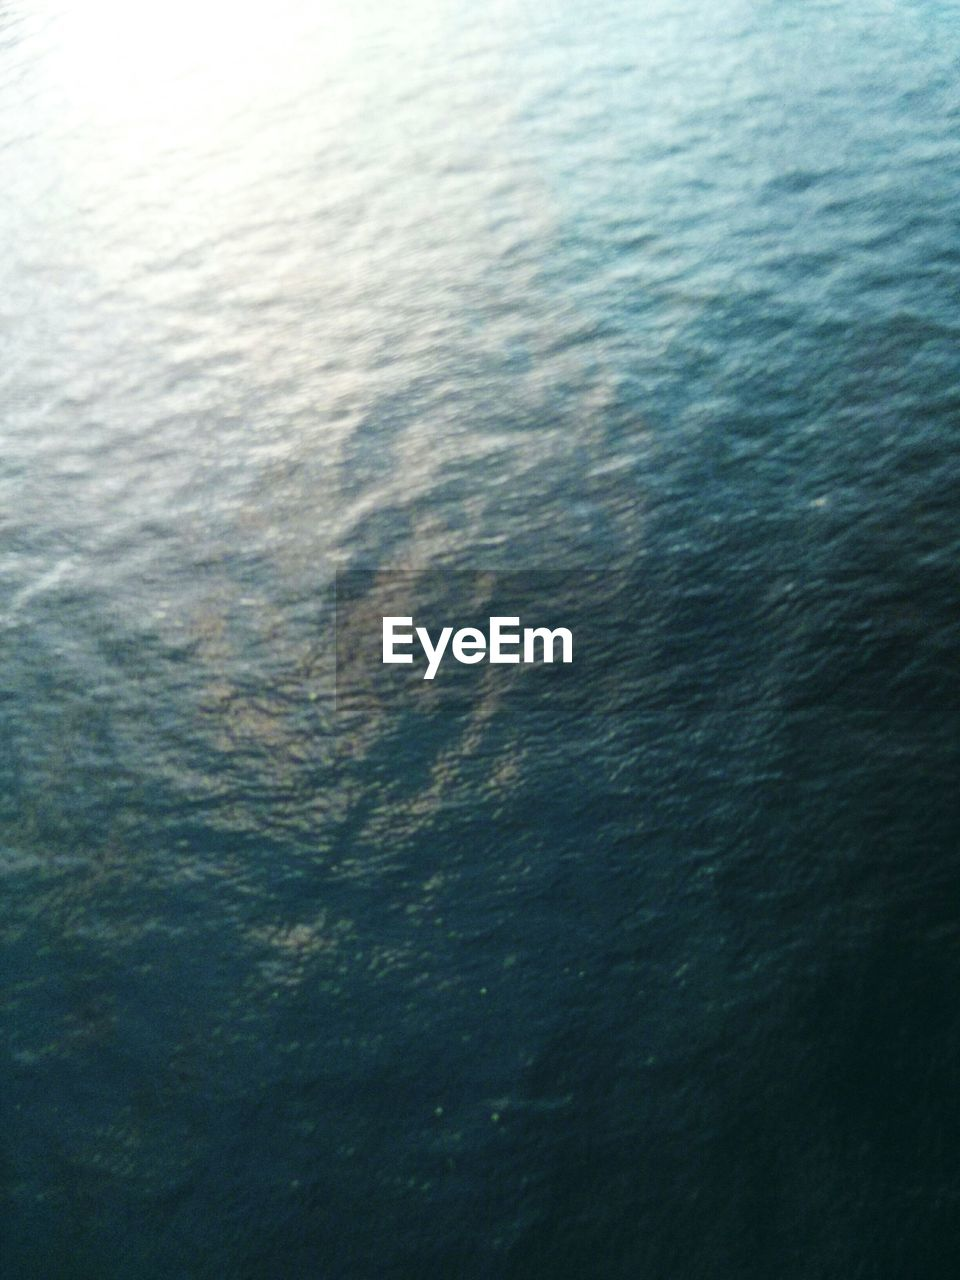 High Angle View Of Water In Sea